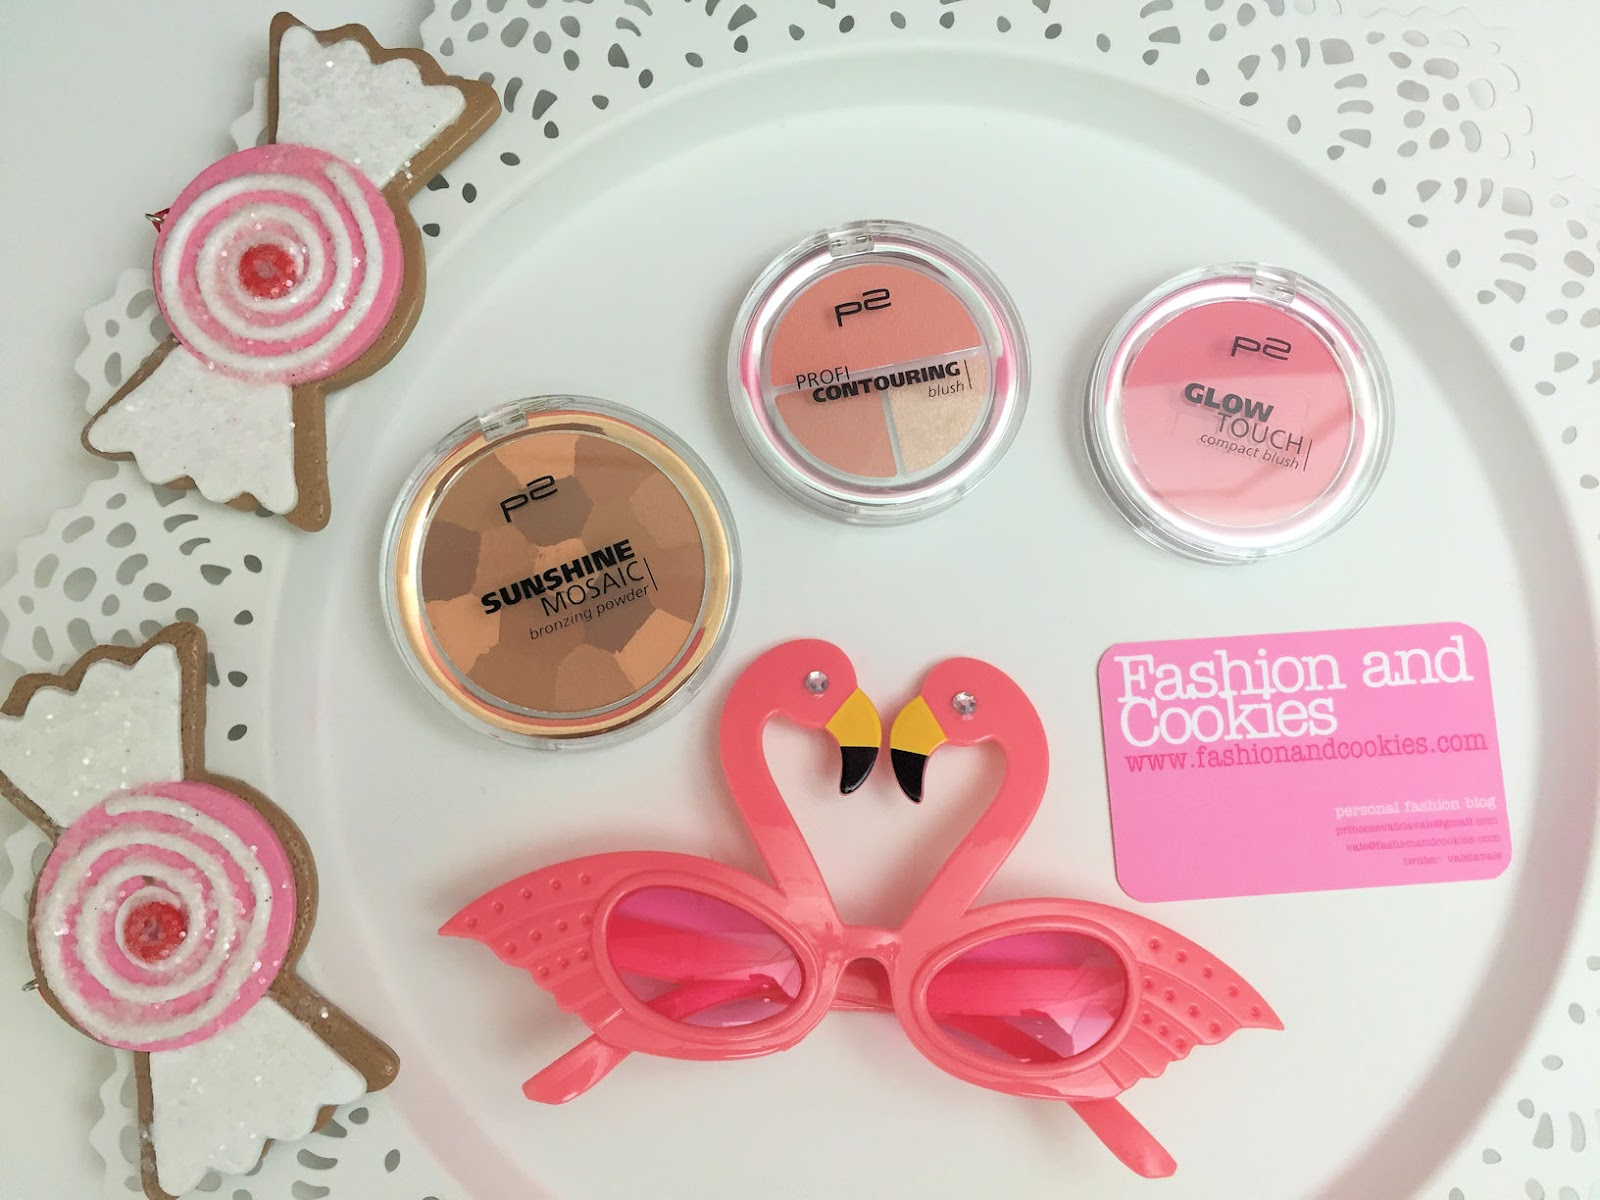 p2 Cosmetics makeup low cost review e haul viso su Fashion and Cookies beauty blog, beauty blogger